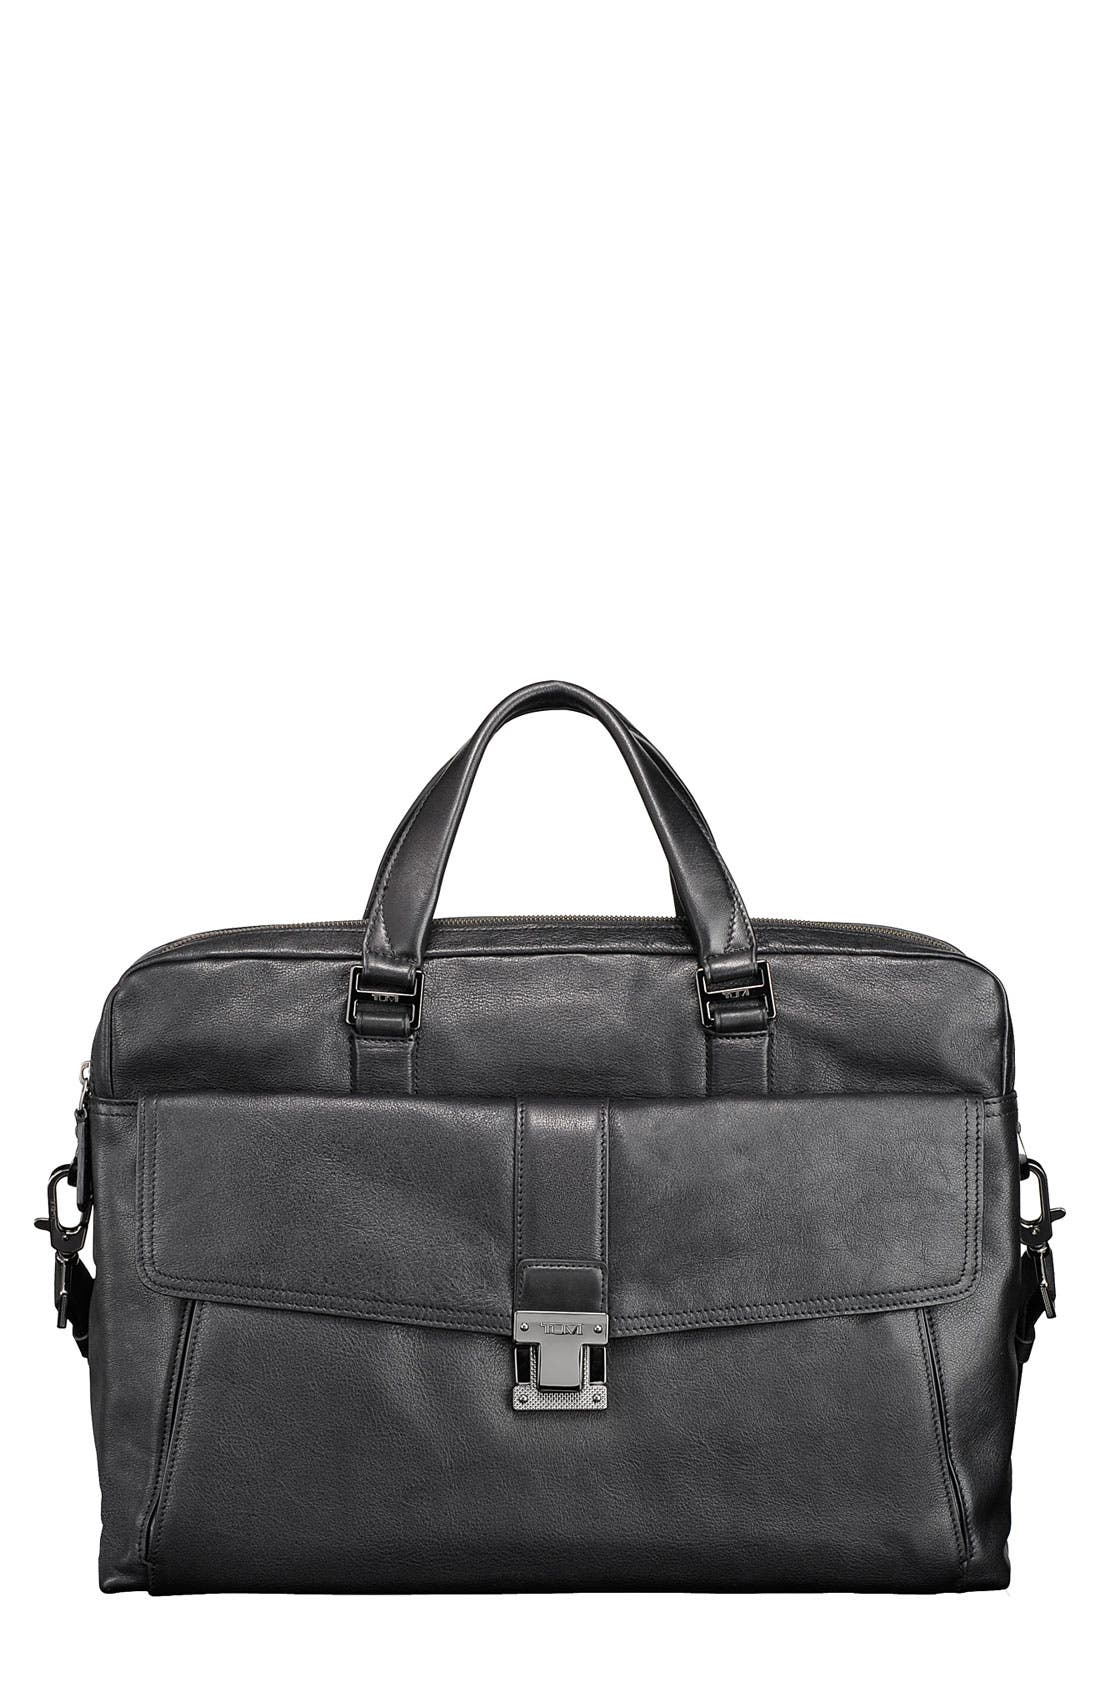 Alternate Image 1 Selected - Tumi 'Beacon Hill - Chestnut Large' Laptop Briefcase